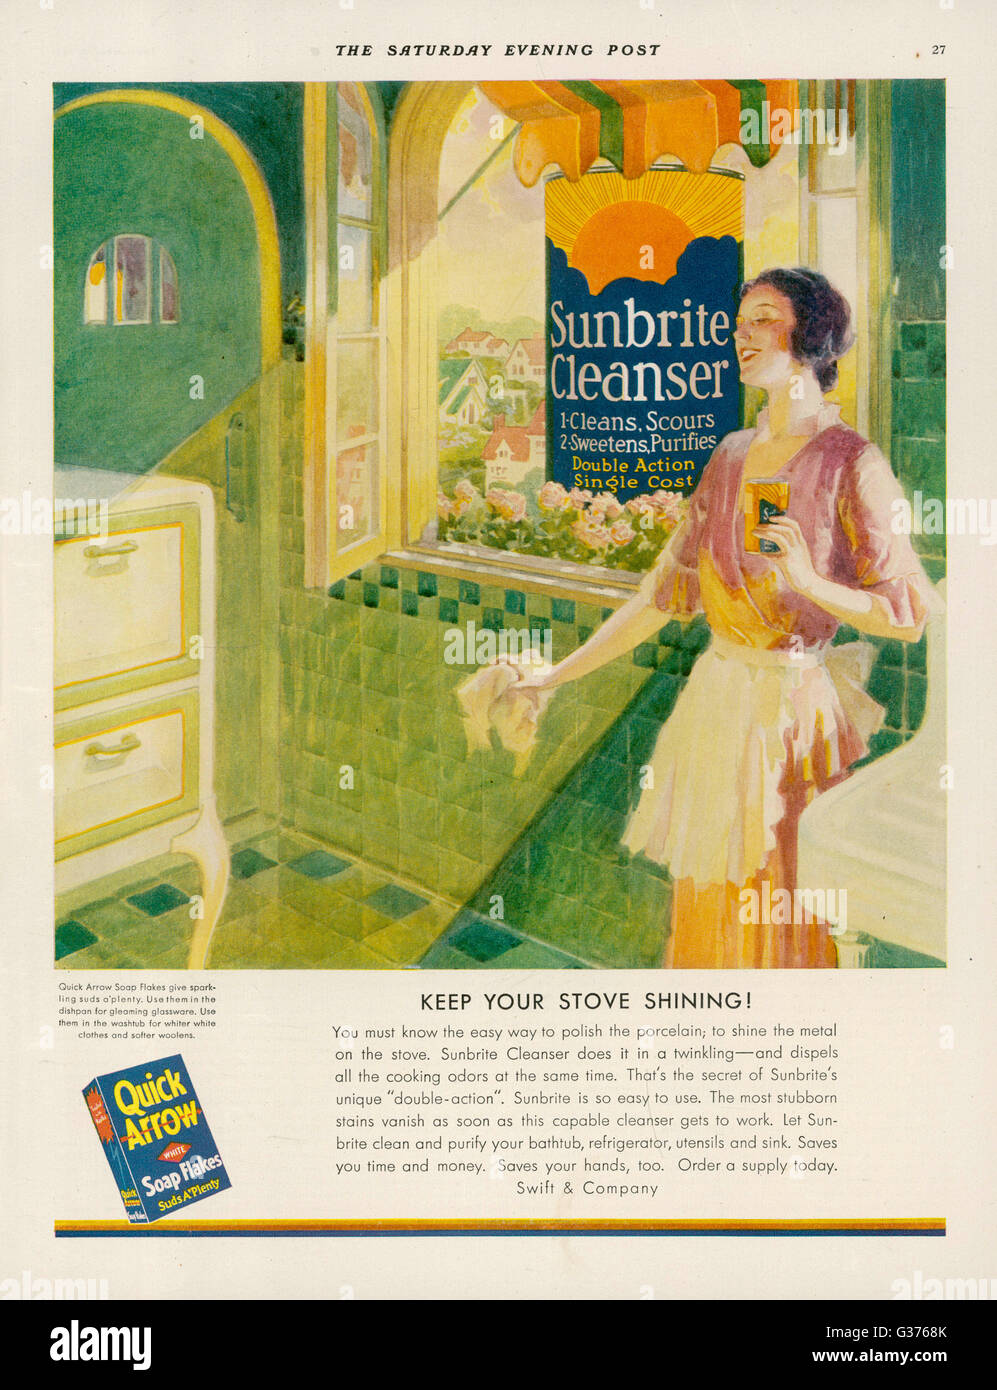 'Keep your stove shining...  with QUICK ARROW SOAP FLAJES -  Suds a'plenty !'        Date: 1931 - Stock Image